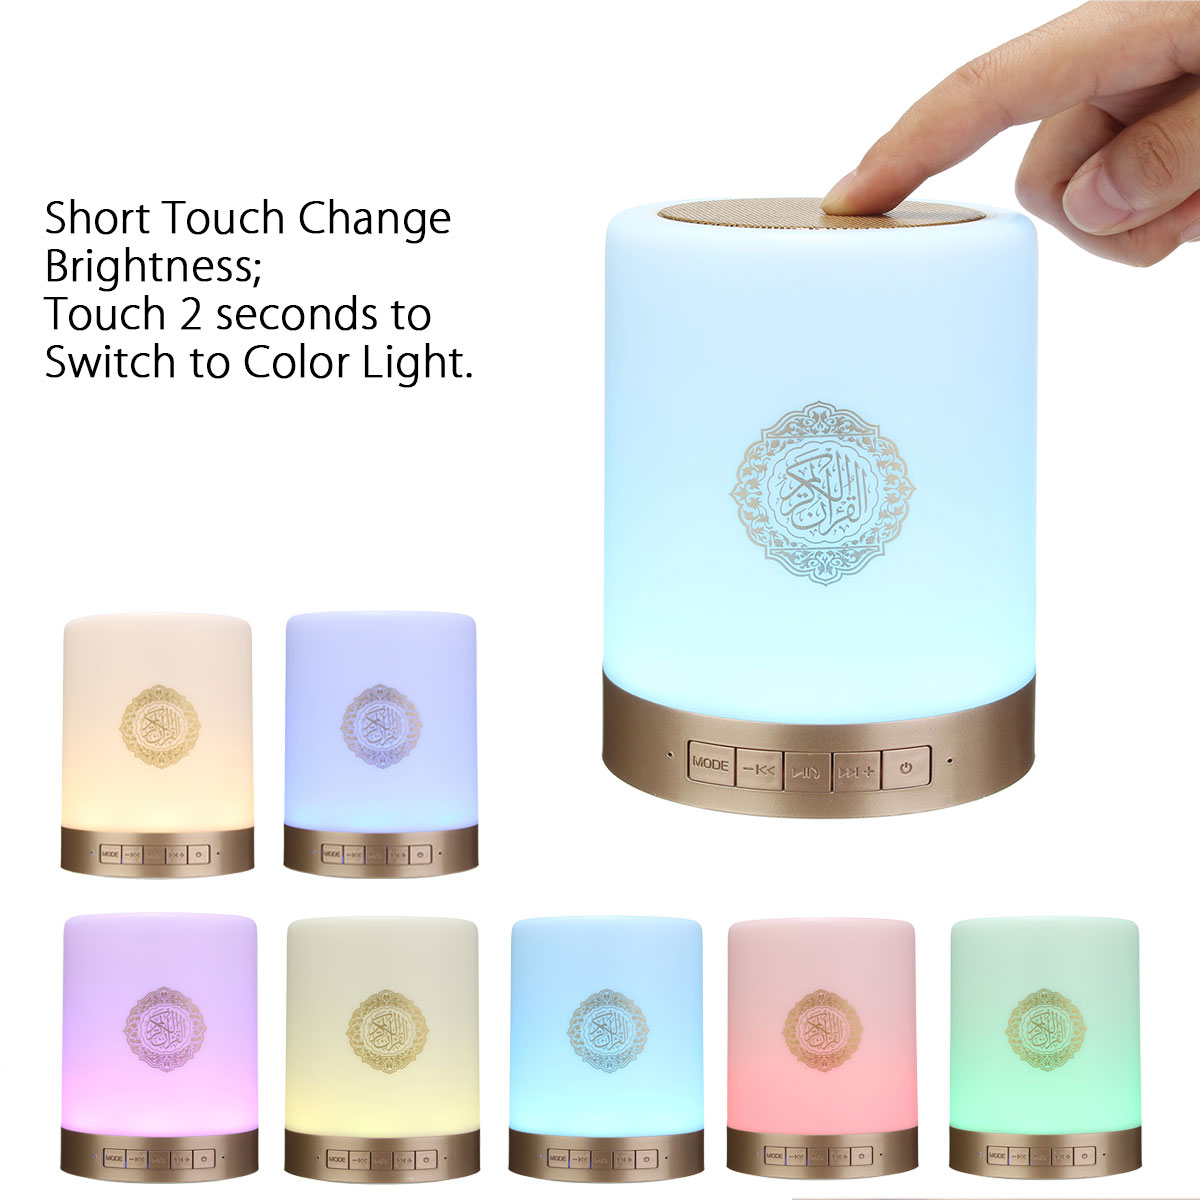 Speakers Combination Speakers Hearty 2019 New Sq509 Bluetooth Night Light Islamic Quran Mp3 Player Touch Lamp Quran Speaker